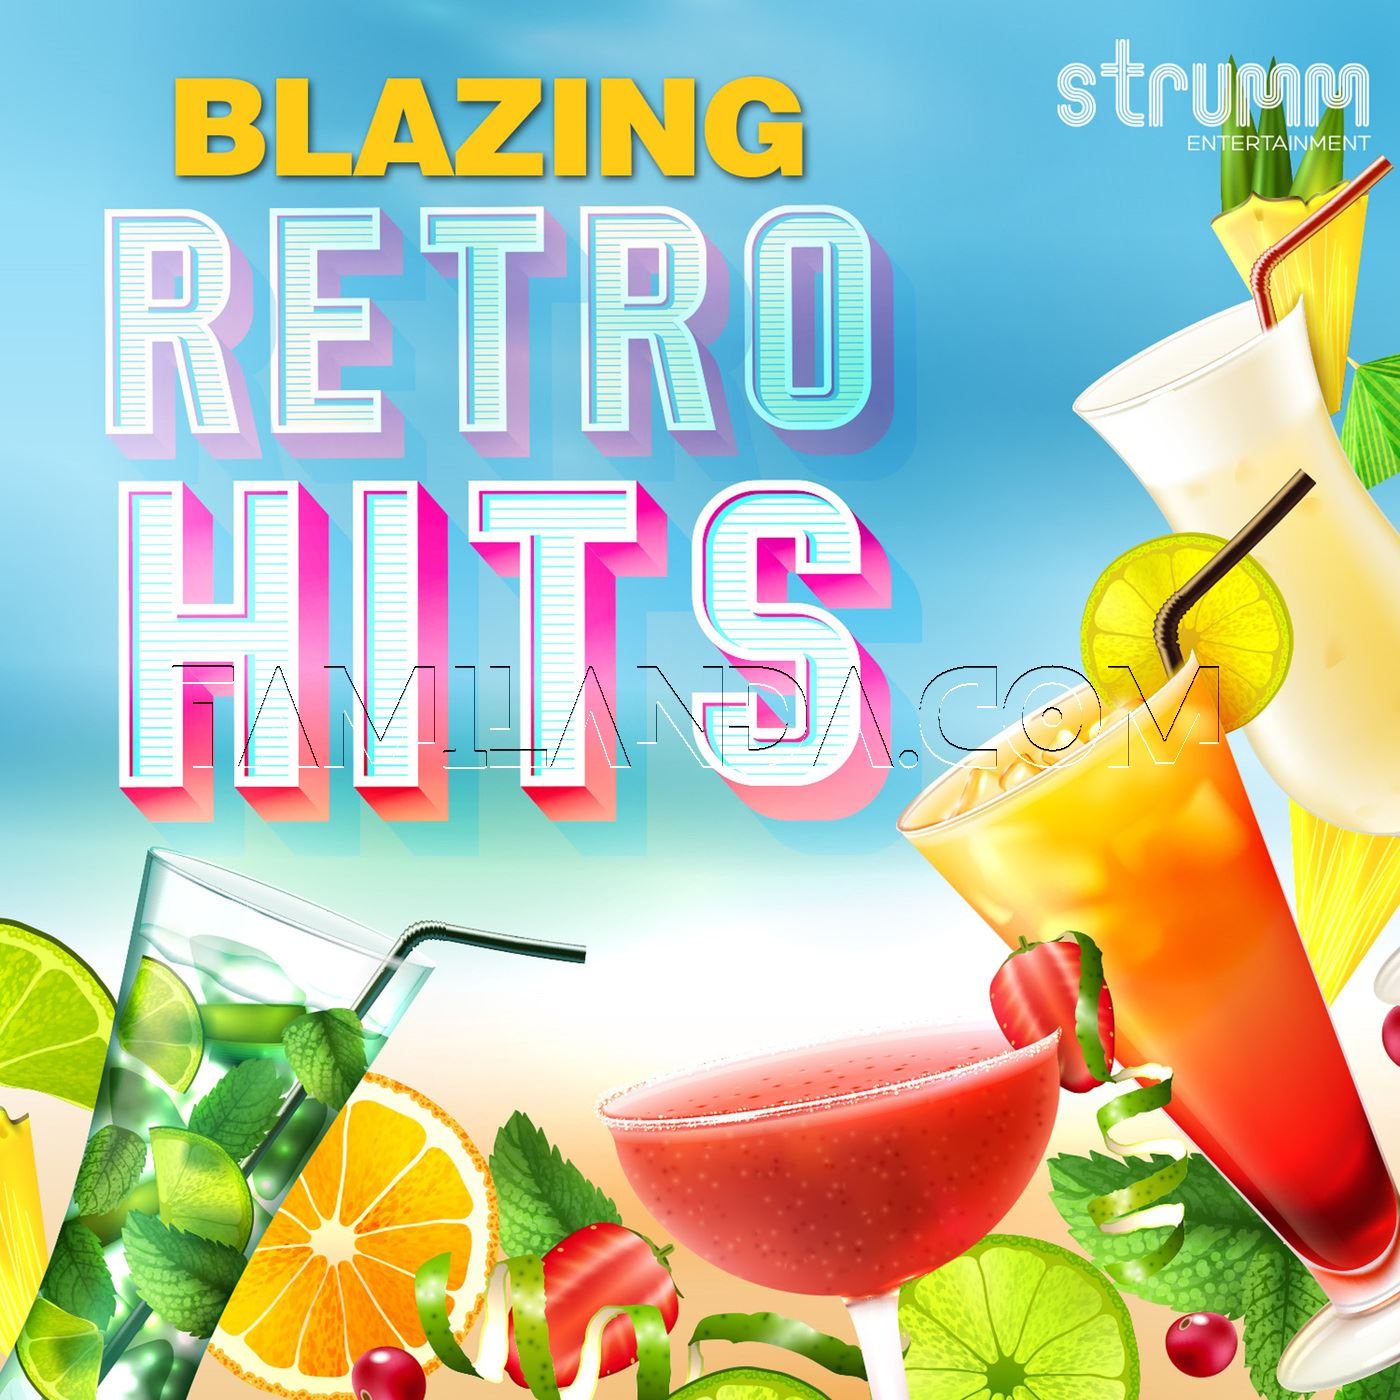 Blazing Retro Hits (2016) FLAC Songs